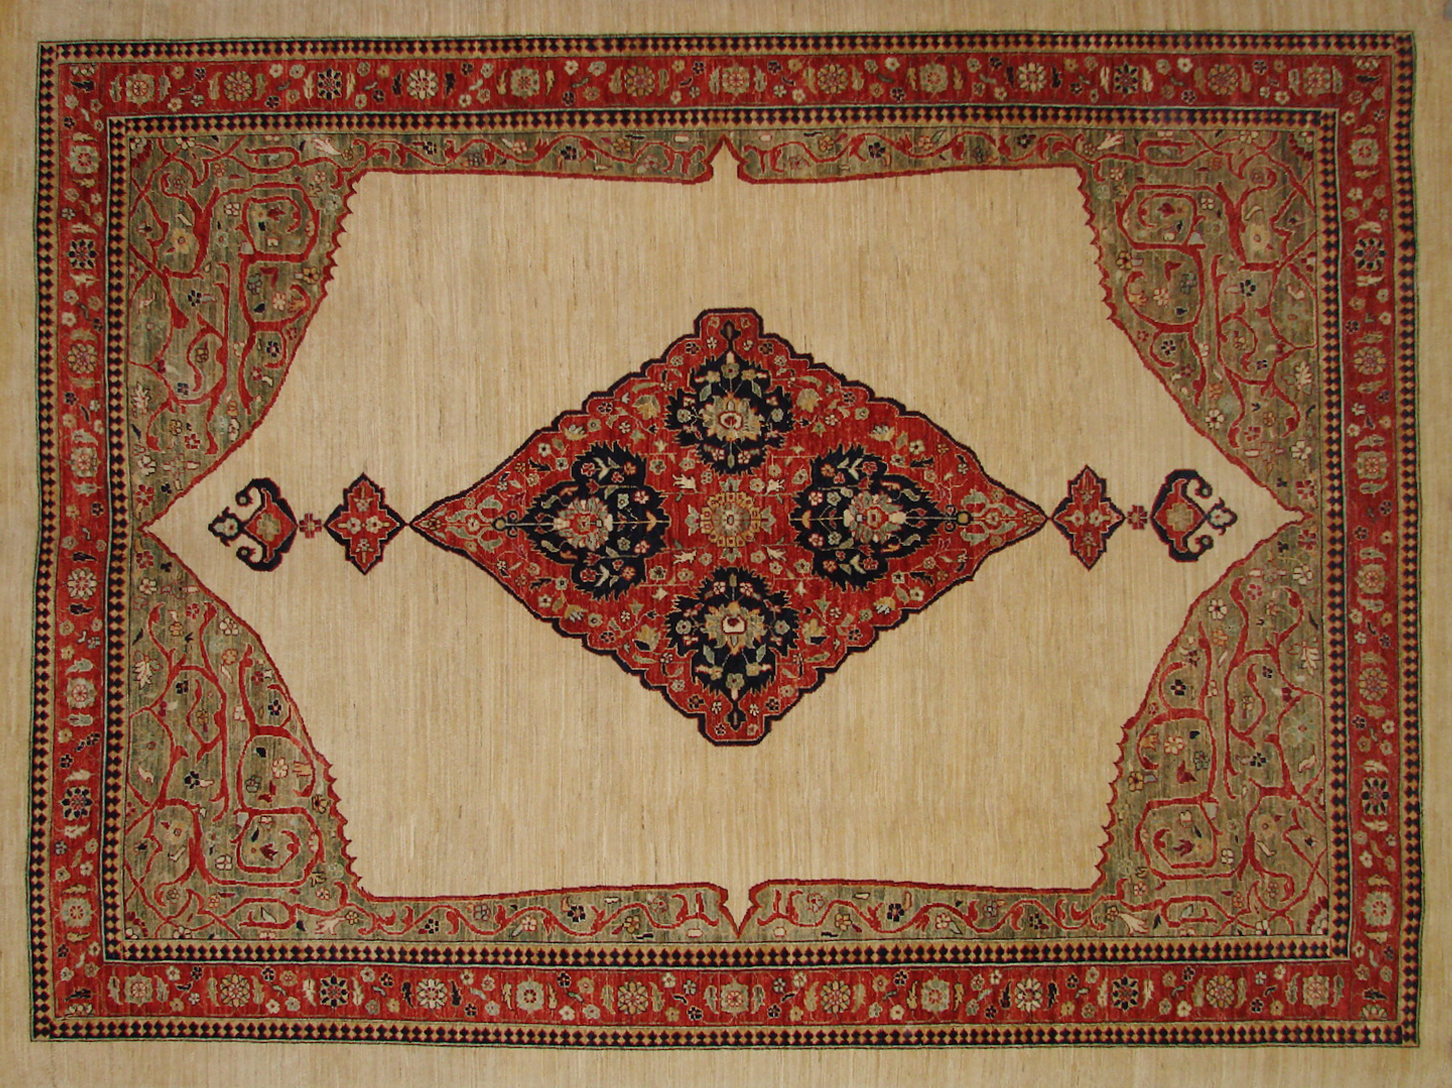 9x12 Antique Revival Hand Knotted Wool Area Rug - MR19572